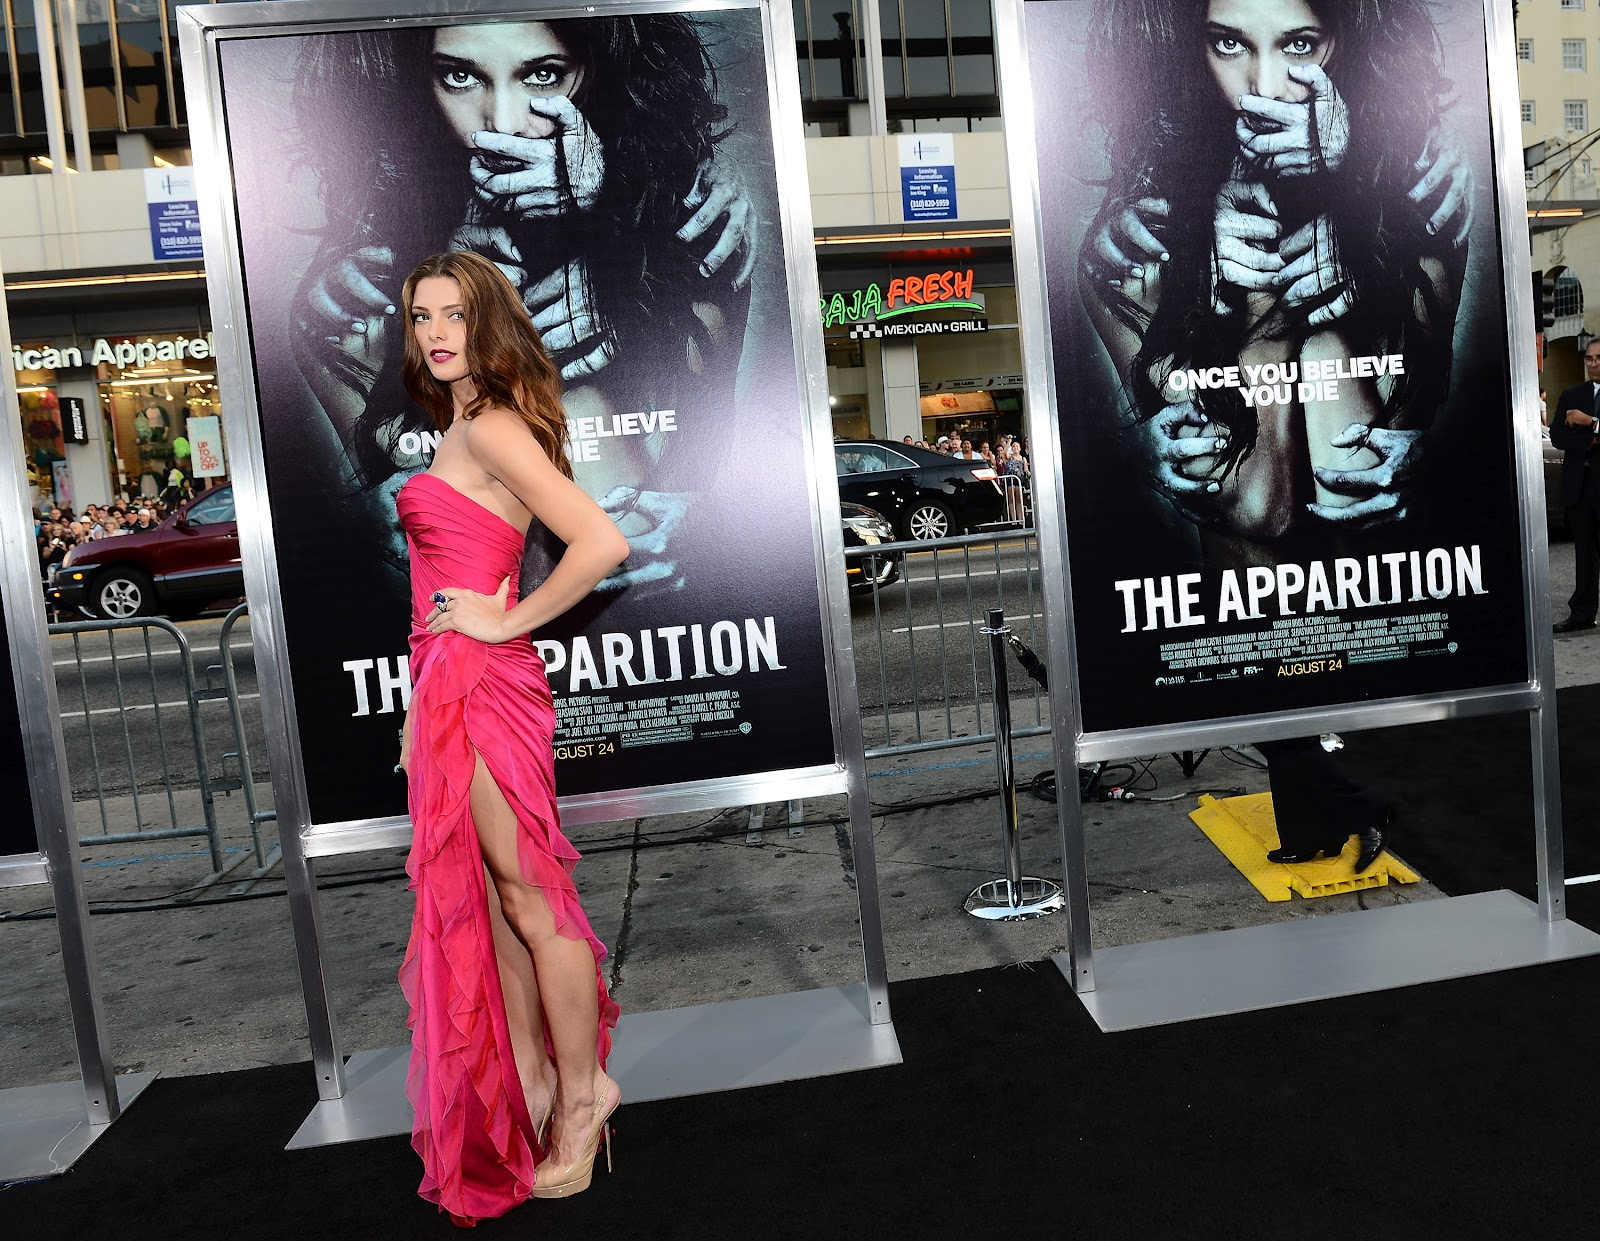 http://1.bp.blogspot.com/-r7BgOgjzsxs/UDdA8Y0ET6I/AAAAAAAANII/YXFVXAkl0Qw/s1600/Ashley+Greene+attends+The+Apparition+premiere+in+Hollywood+on+August+23rd+2012-04.jpg